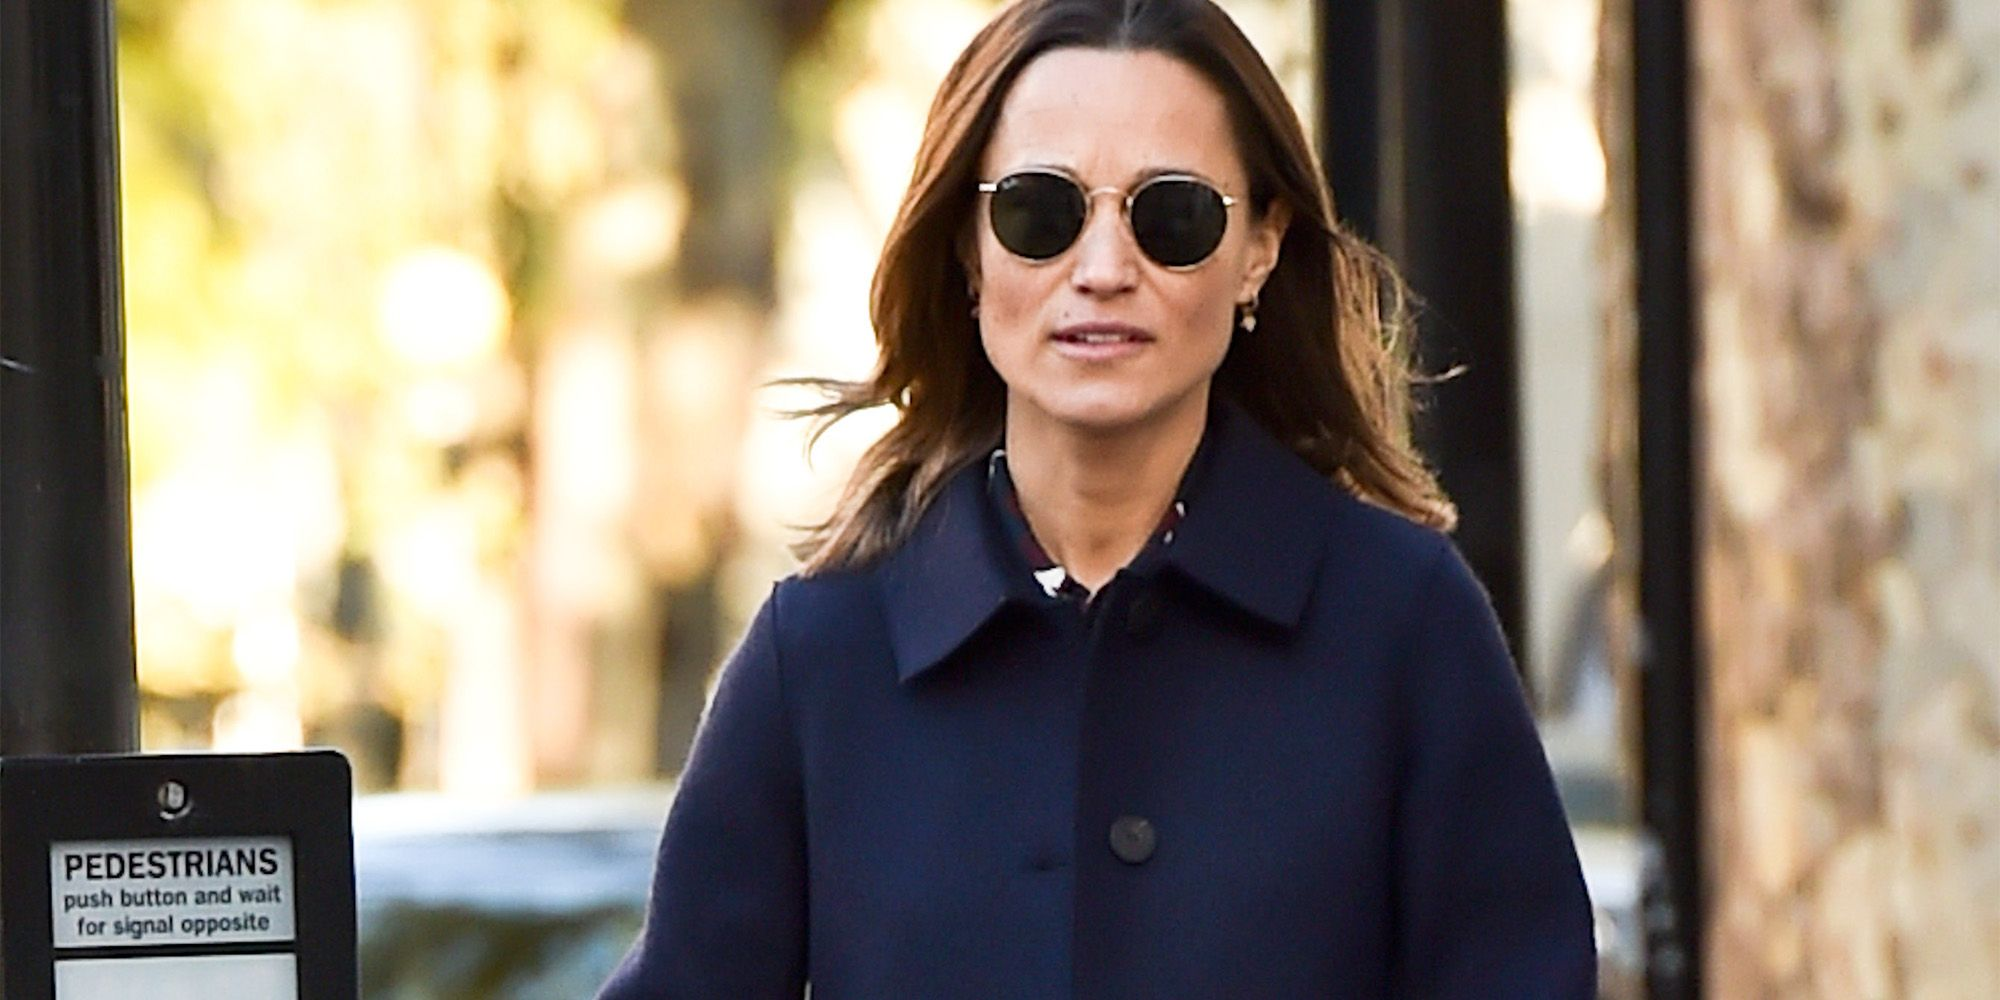 EXCLUSIVE: Pippa Middleton is seen walking her new baby in kensington with a friend.